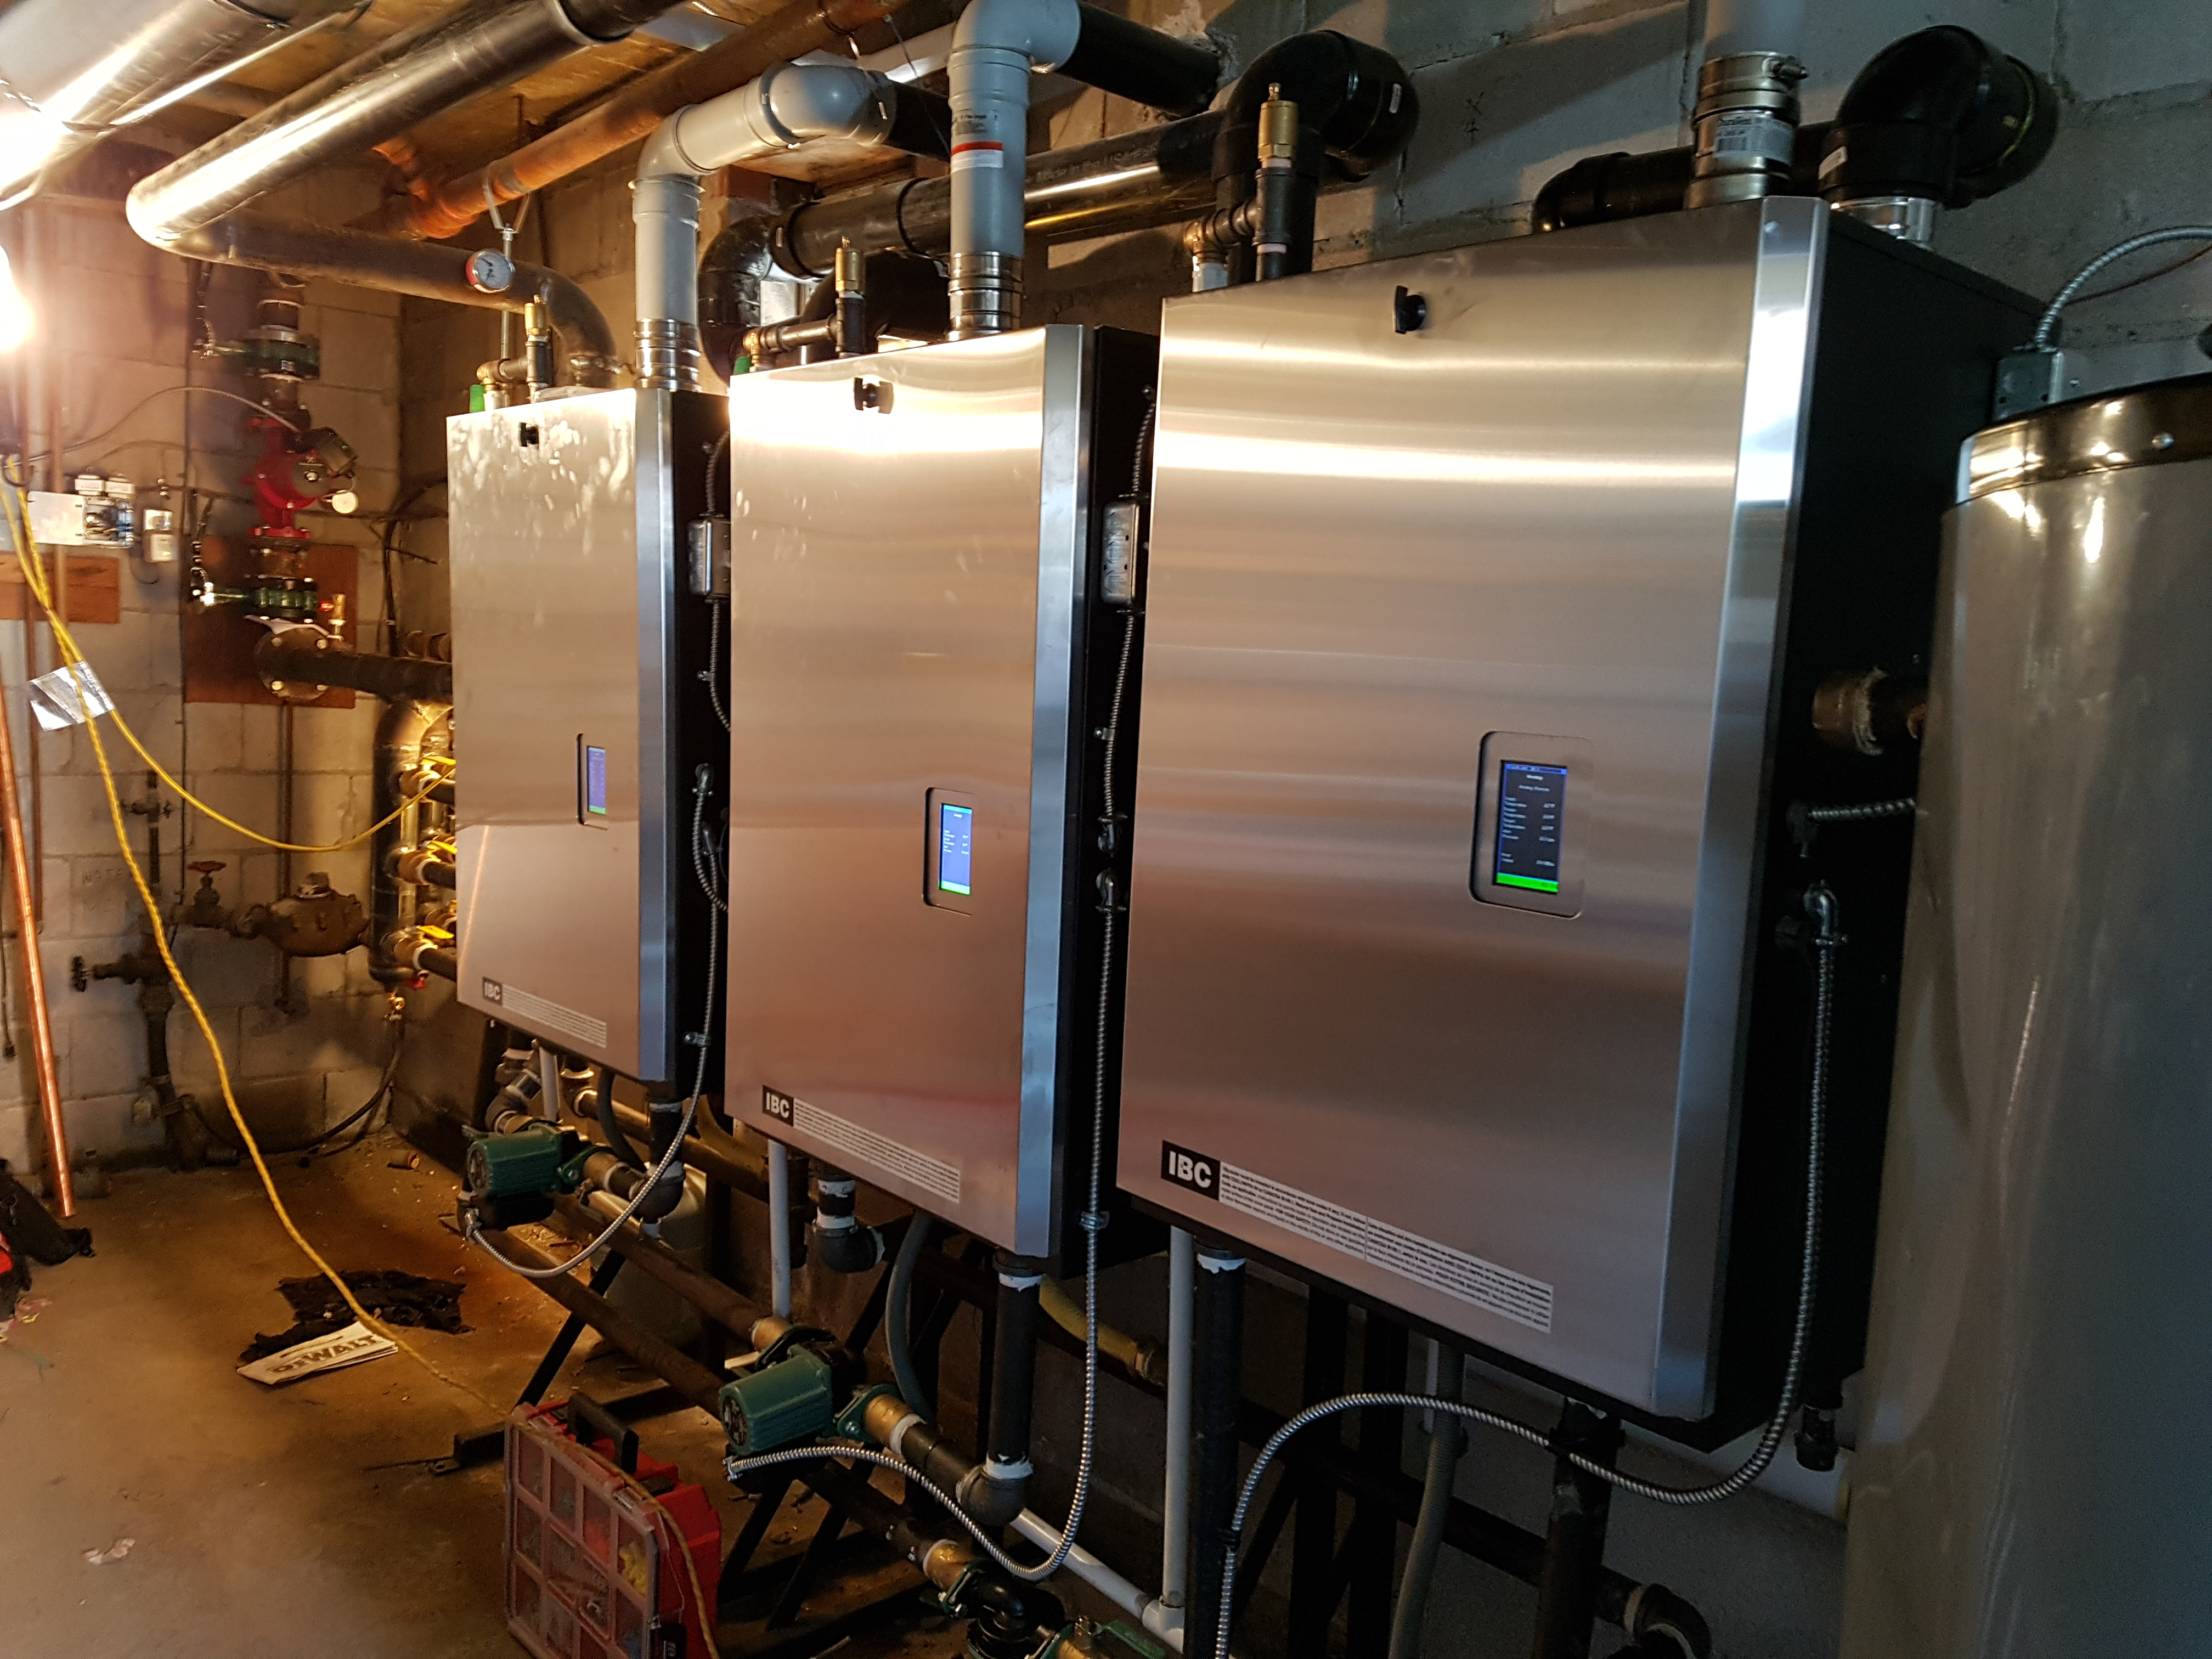 Four Seasons is now offering Solar hot water